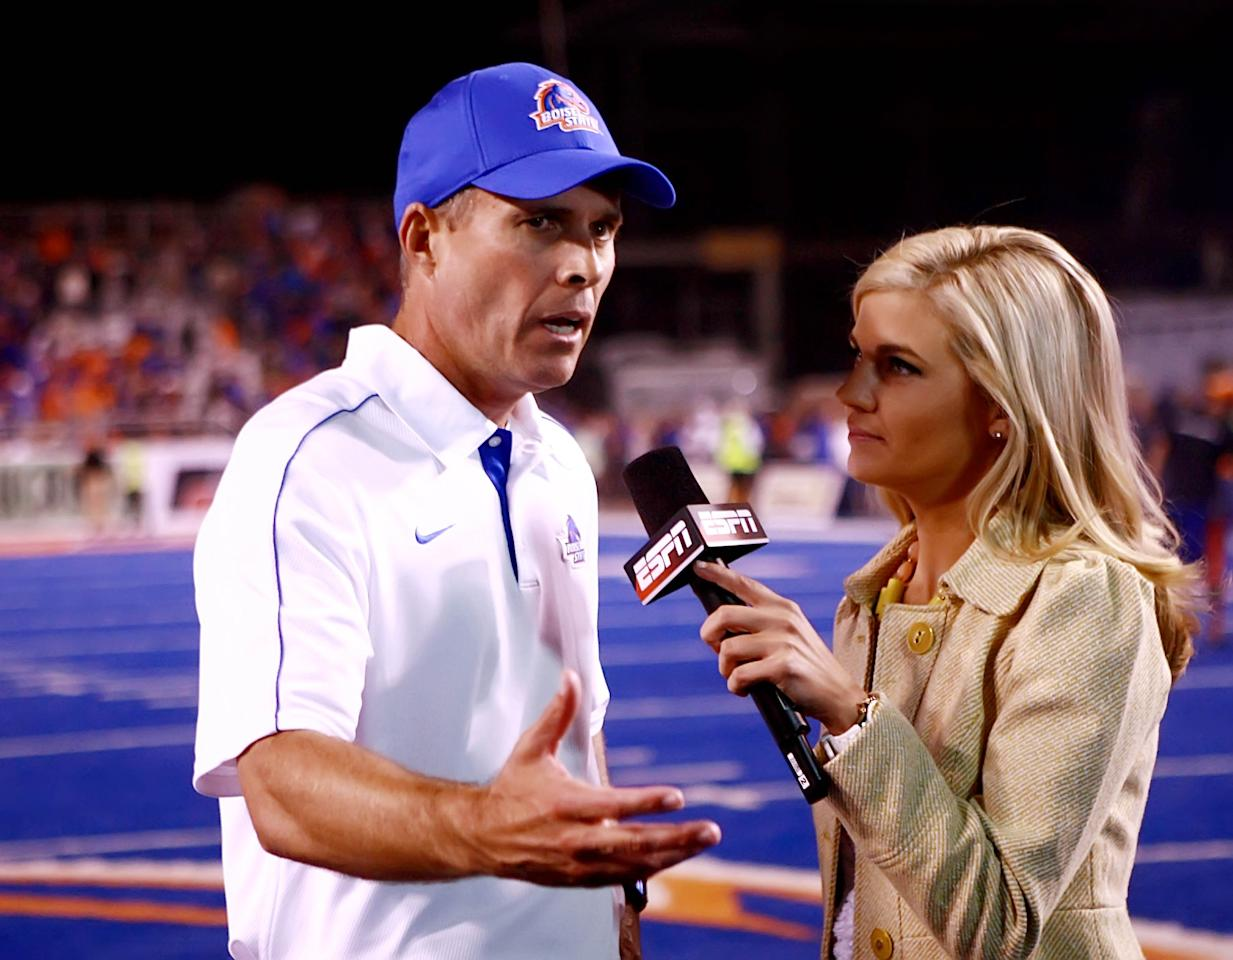 Boise State Broncos head coach Chris Petersen speaks with Samantha Steele after a game.